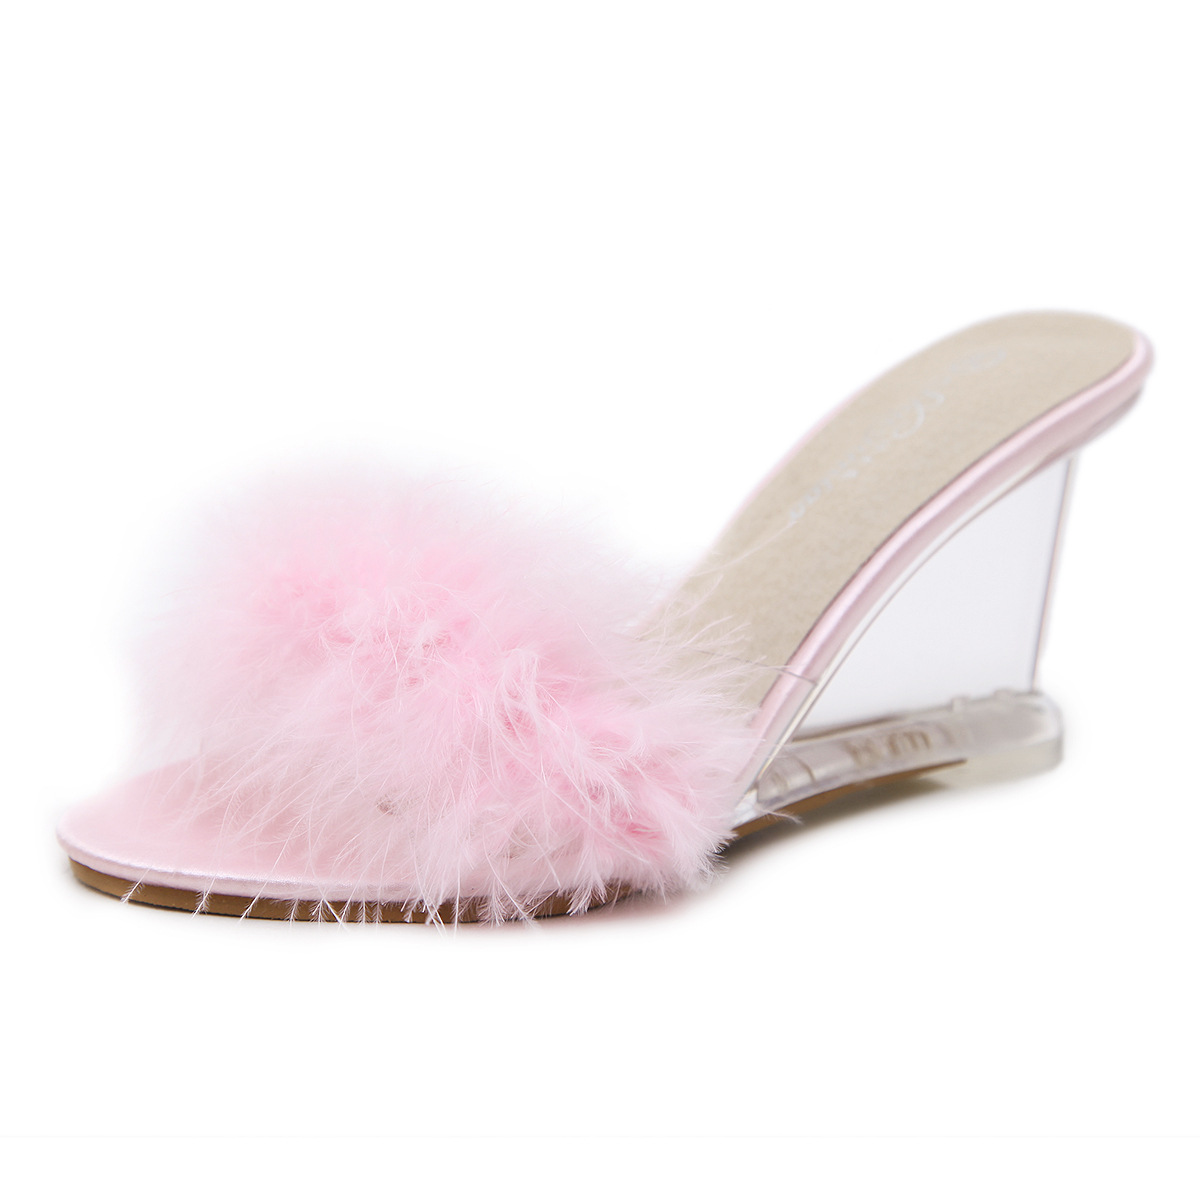 PVC Jelly Sandals Transparent Peep Toe Sandals Fashion Shallow Summer Women Shoes High Heels Clear Wedge Sandals With Fur Decor